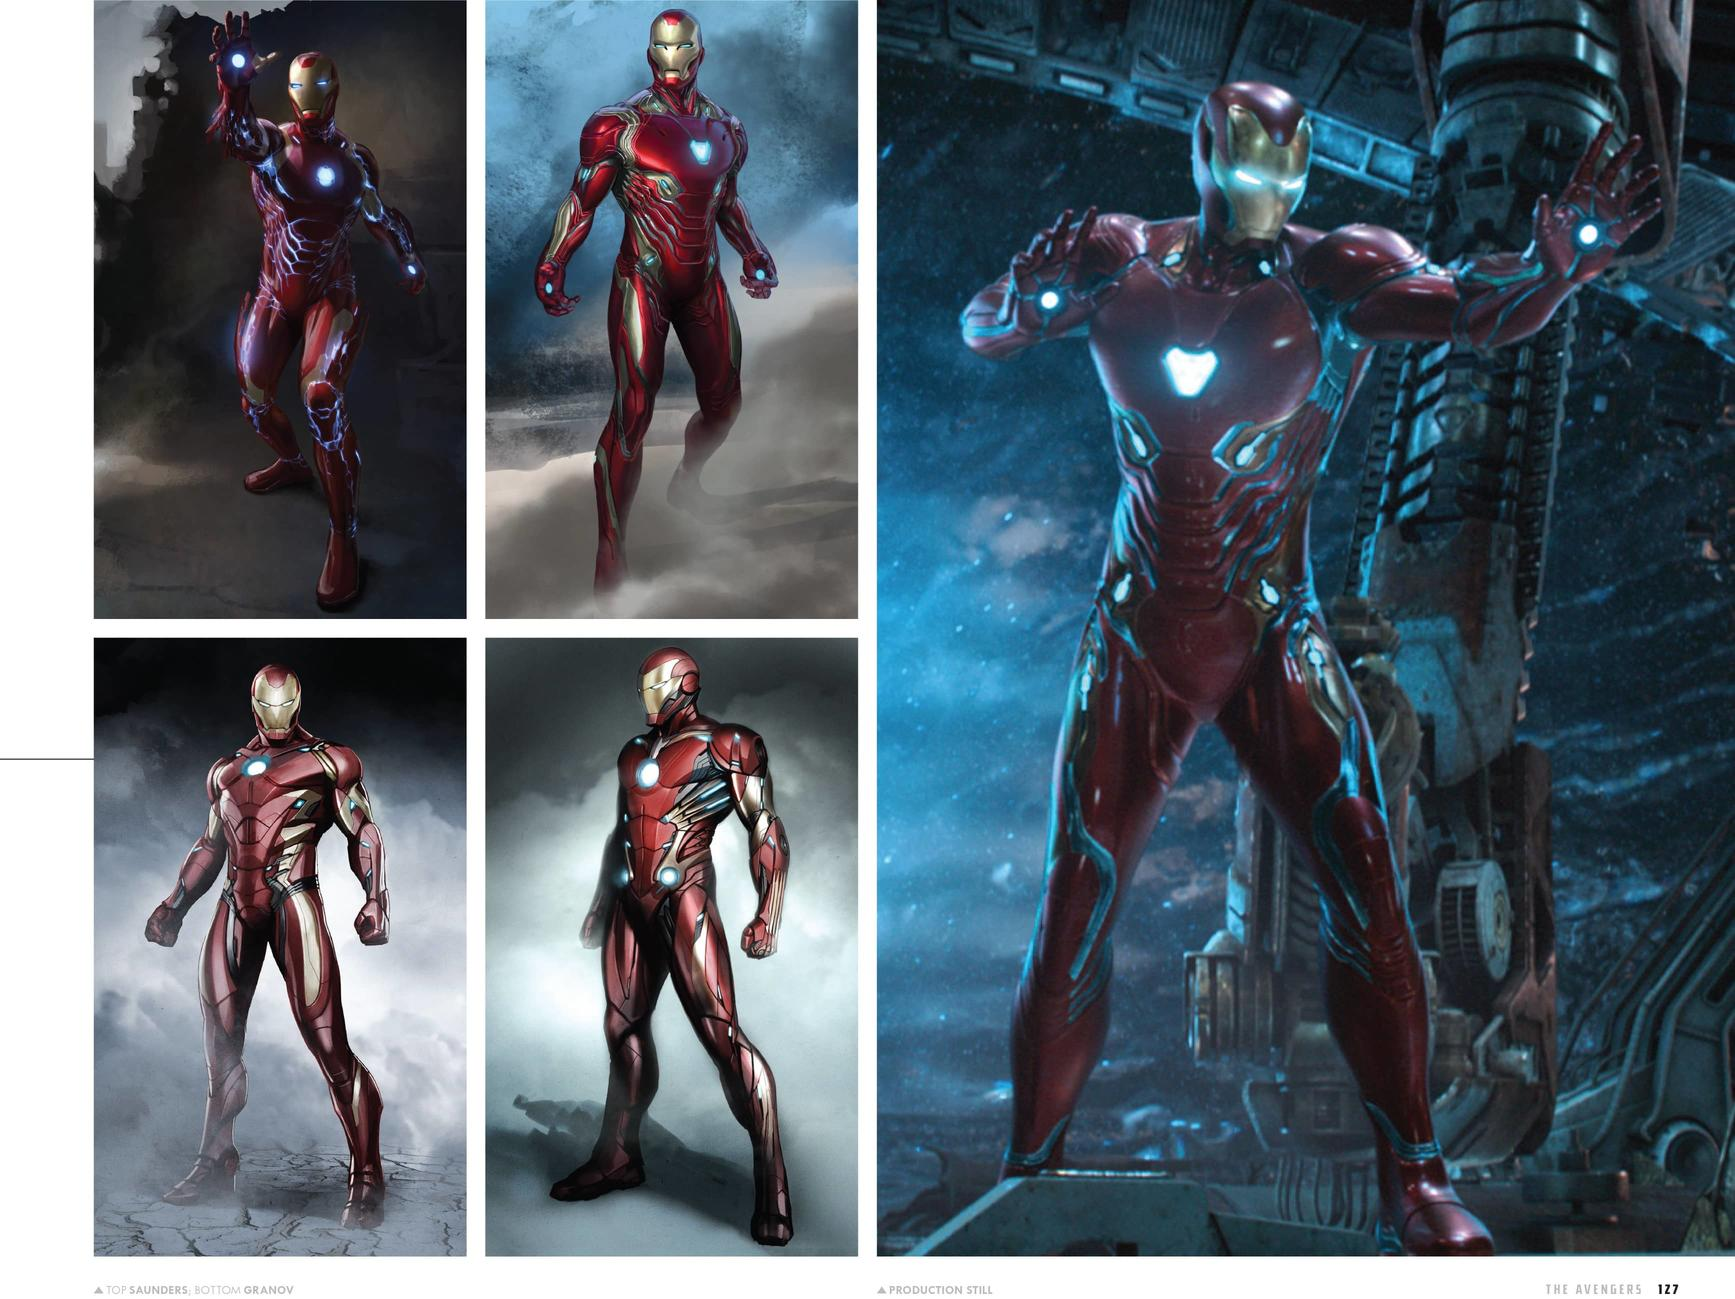 Iron Man - - The Art of the Marvel Cinematic Universe